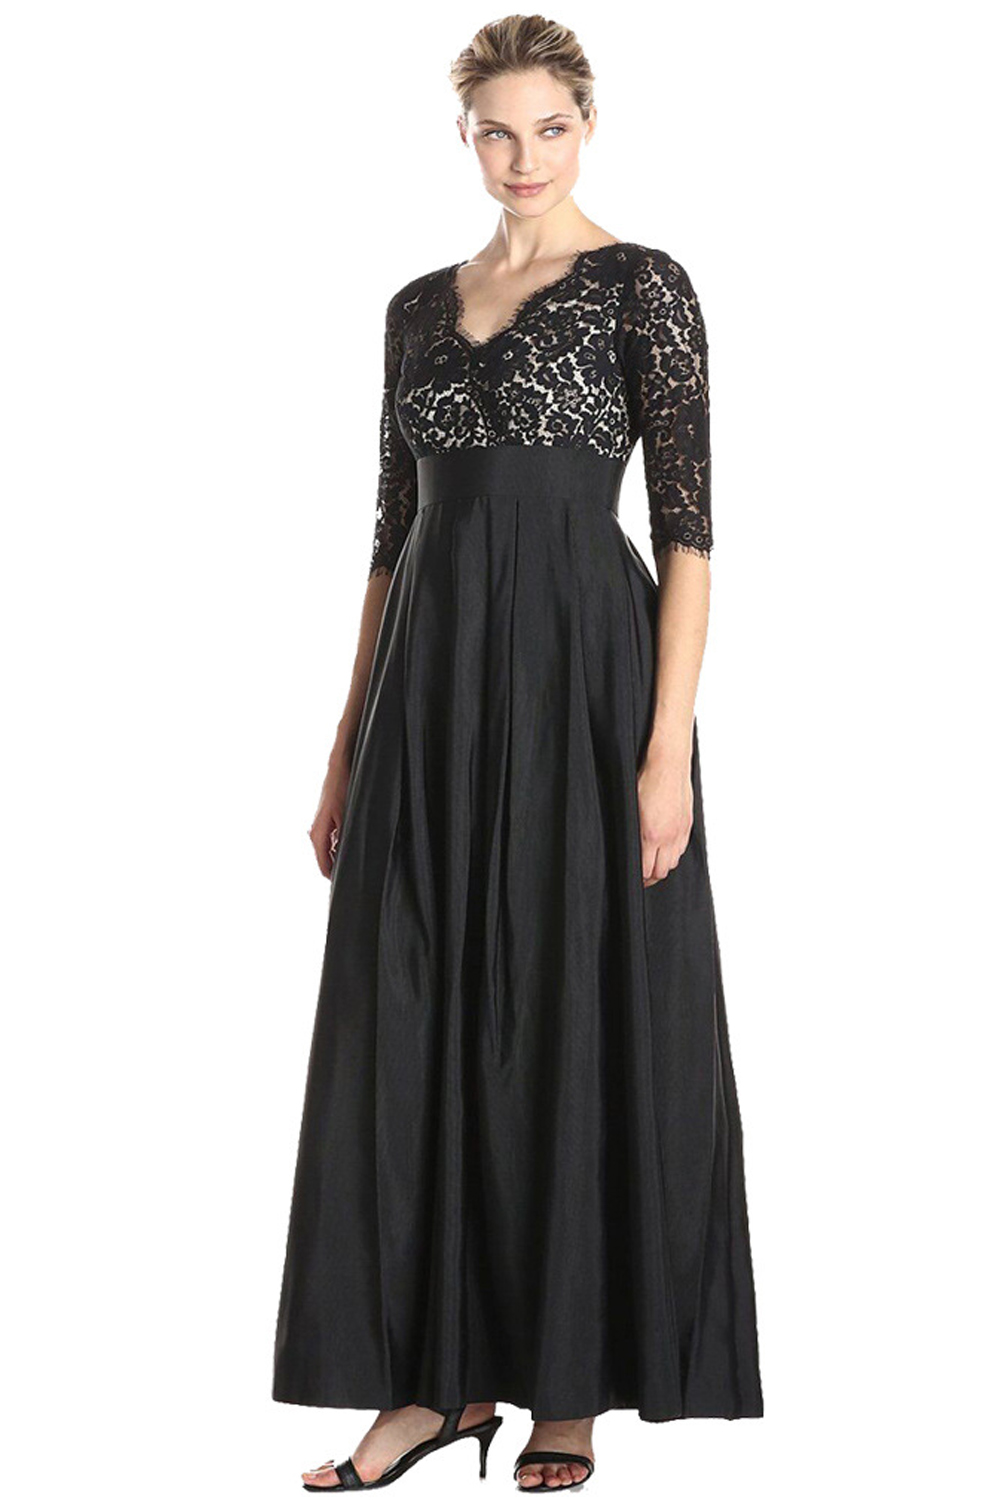 1dbc954e0ad UNOMATCH WOMEN PLUS SIZE LACE STITCHING LONG PARTY MAXI DRESS BLACK ...